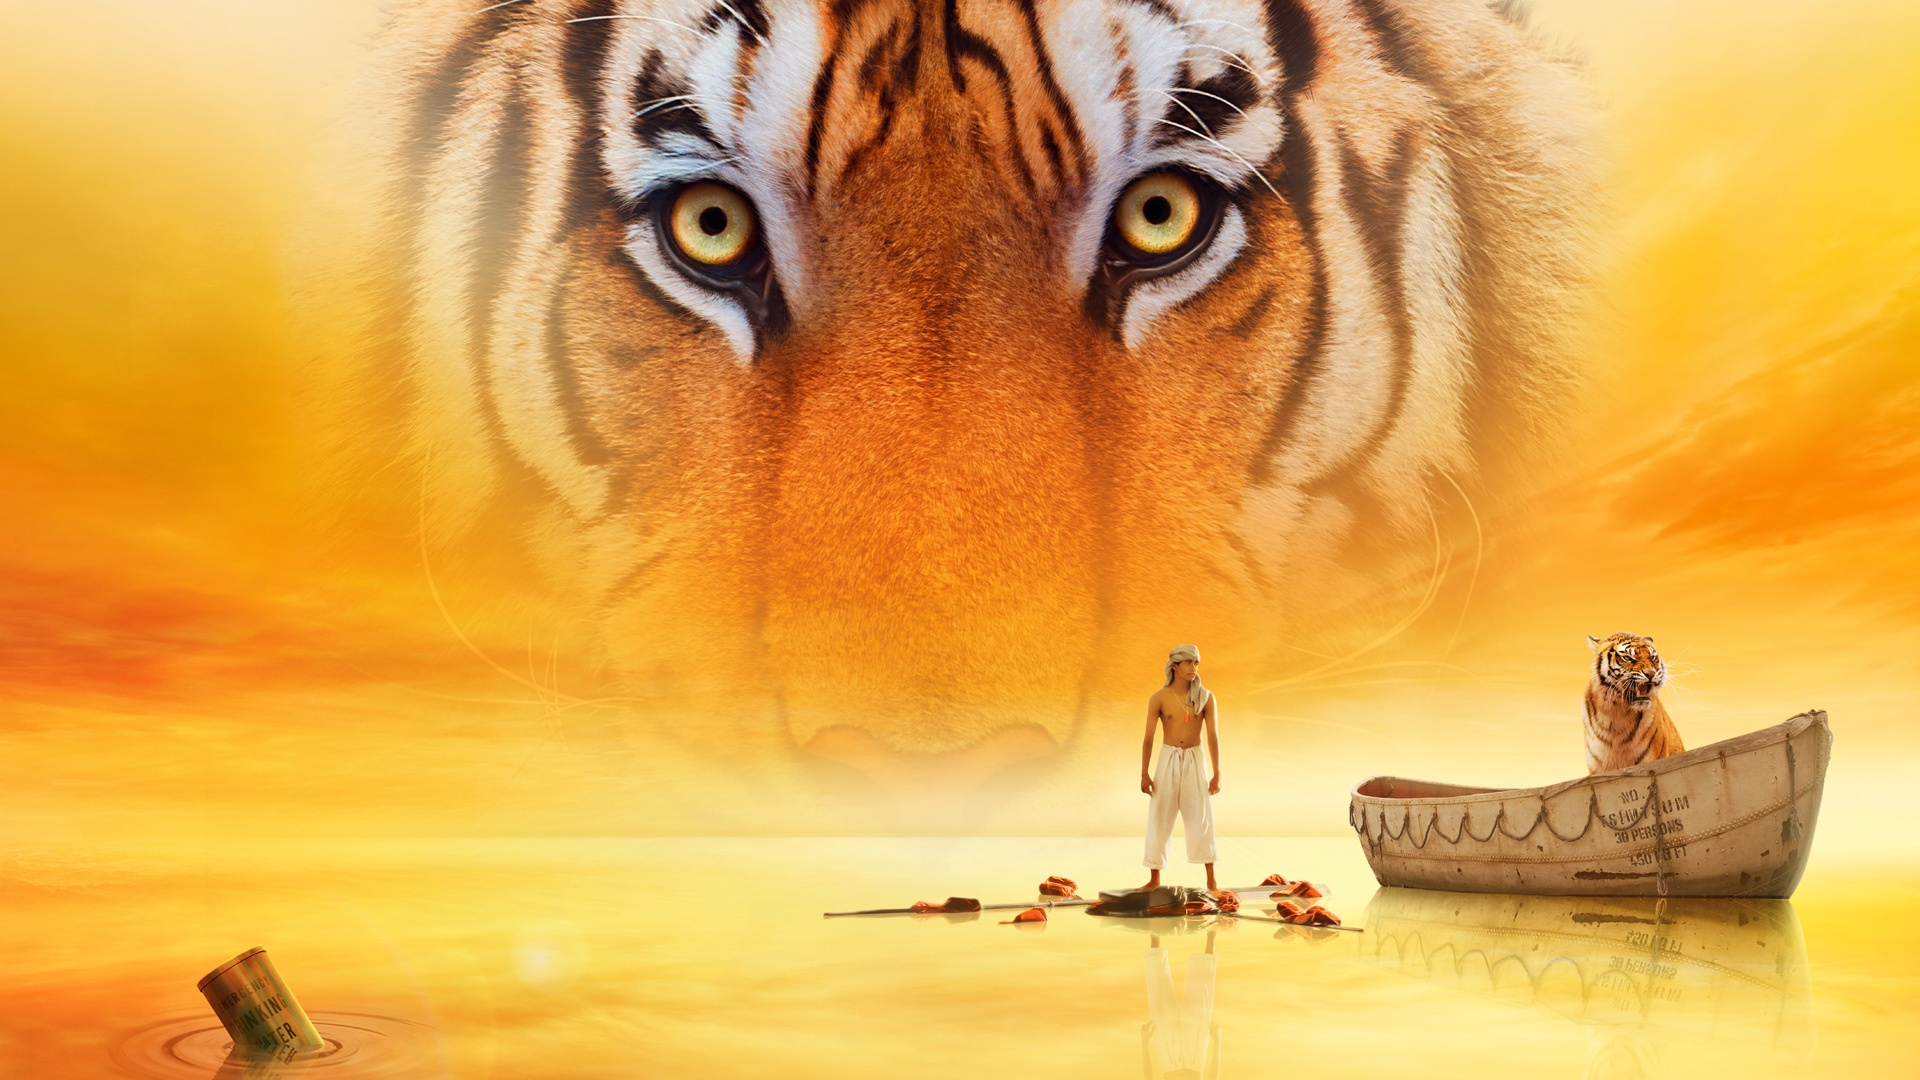 life of pi movie wallpapers in jpg format for free download